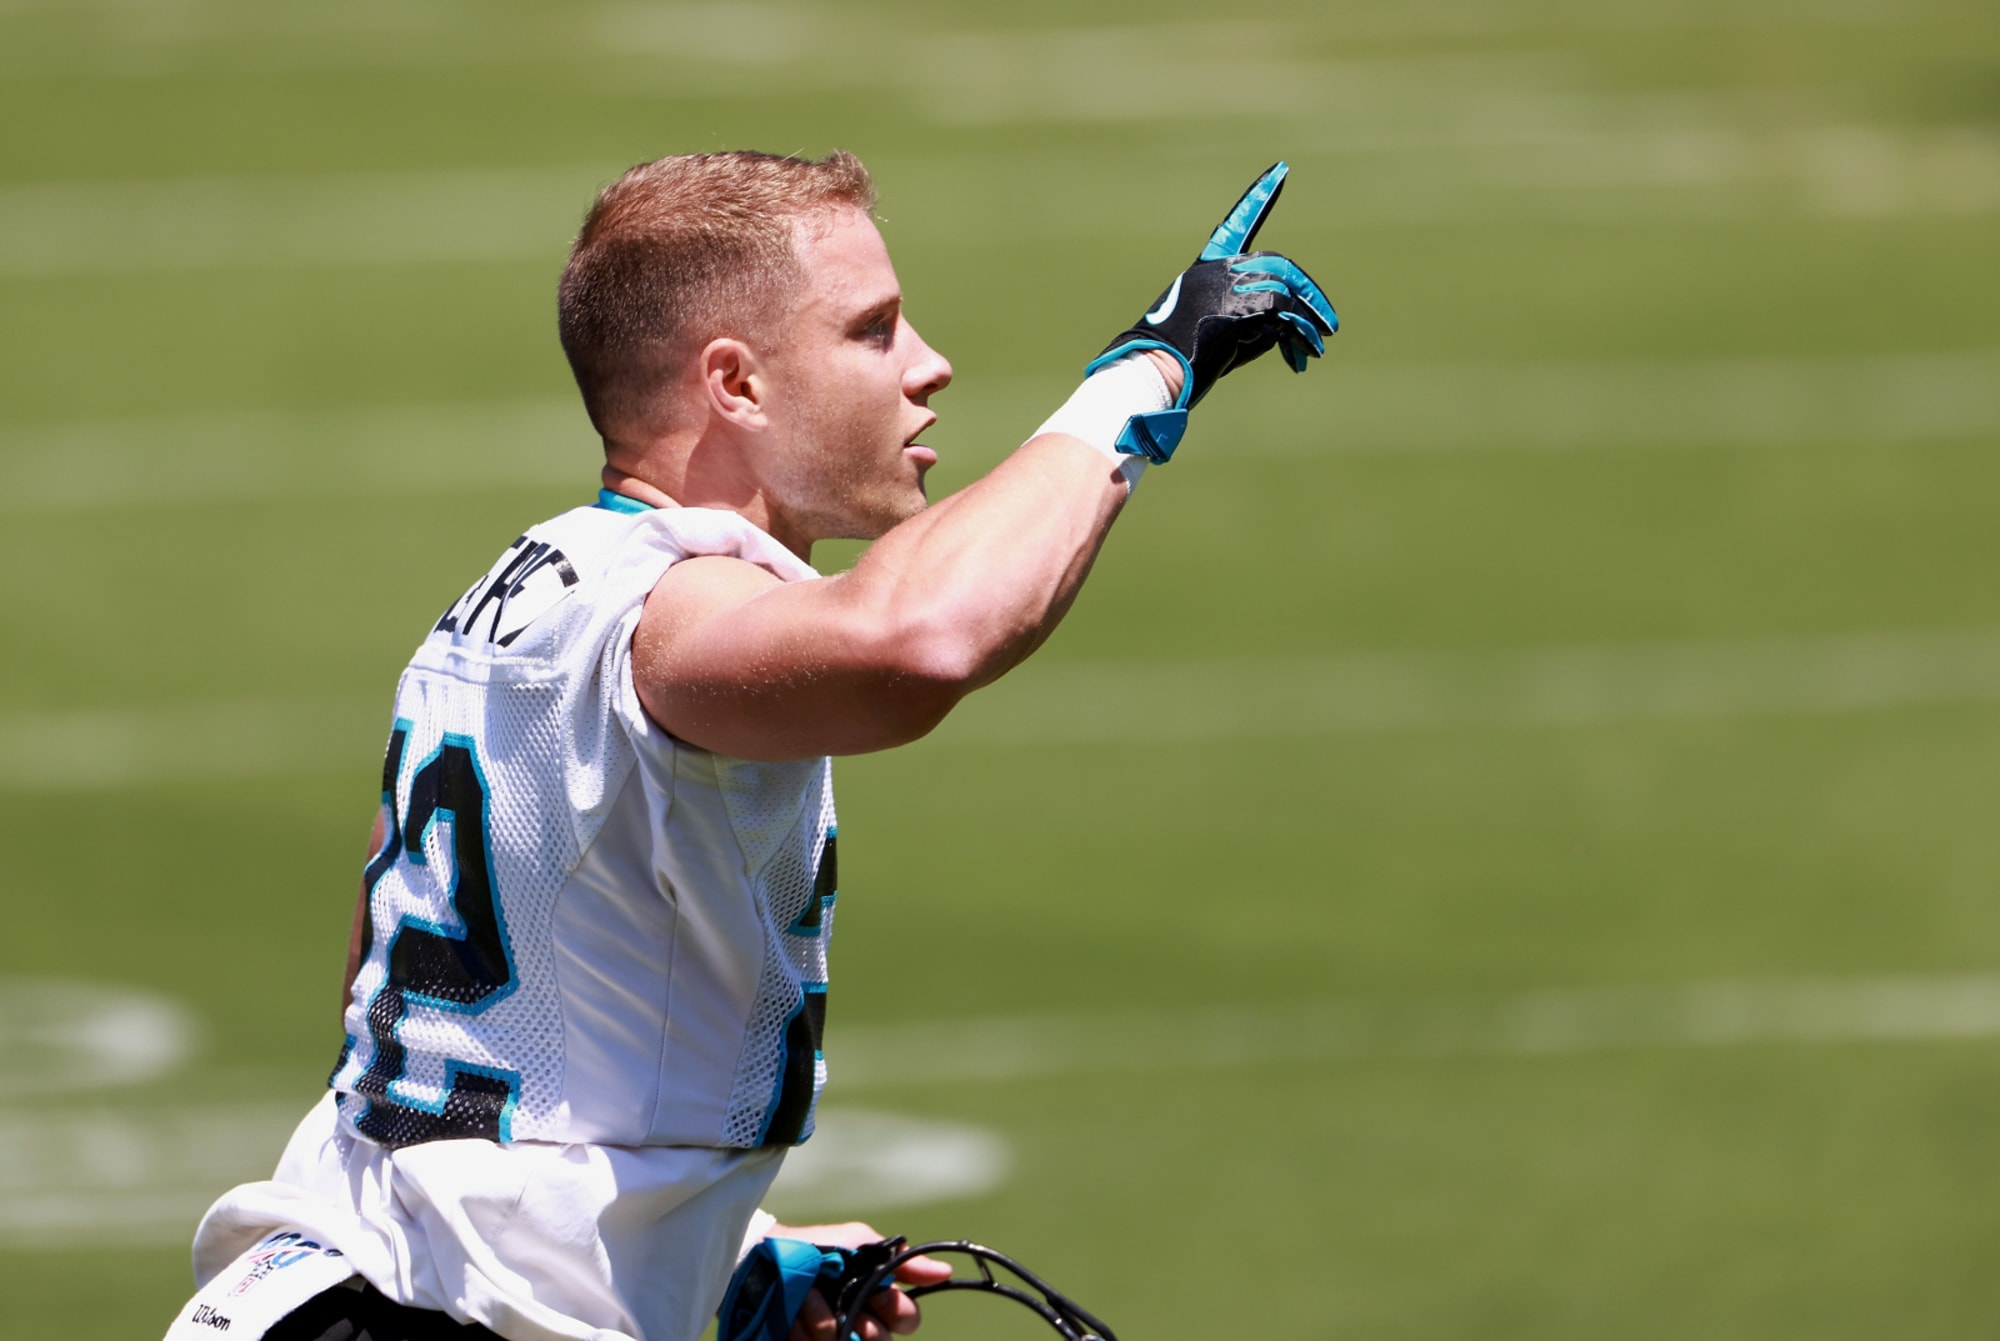 Promising injury projection for Christian McCaffrey in 2021 - Cat Crave